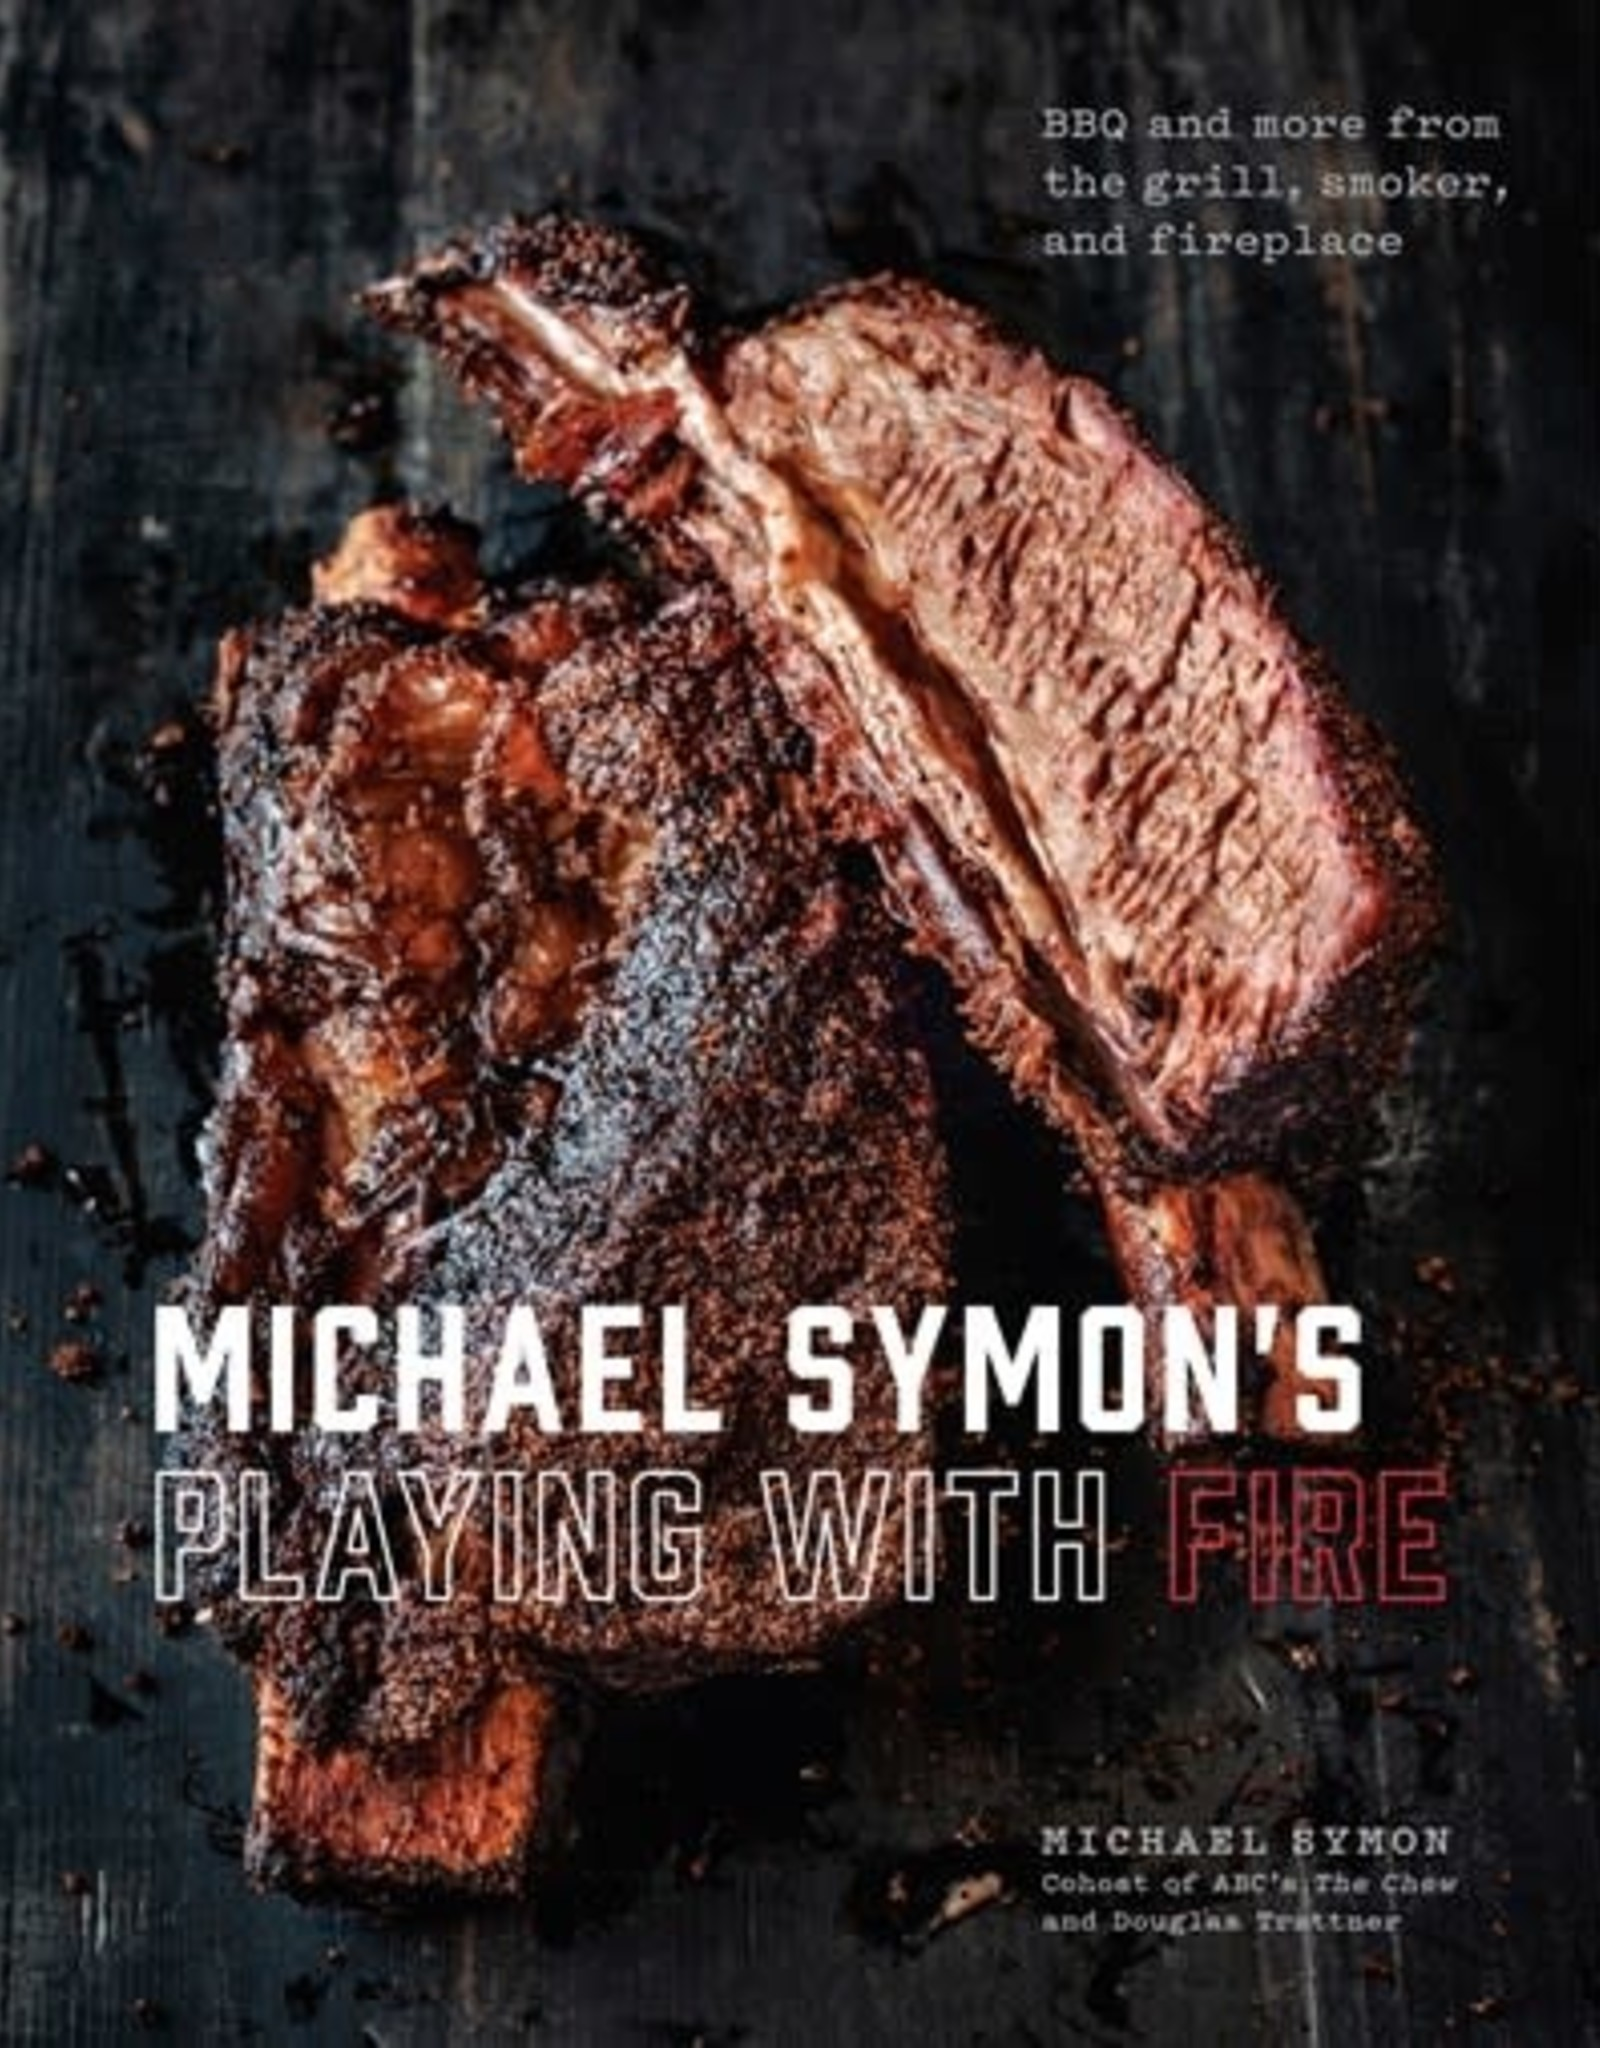 PENGUIN RANDOM HOUSE MICHAEL SYMON'S PLAYING WITH FIRE